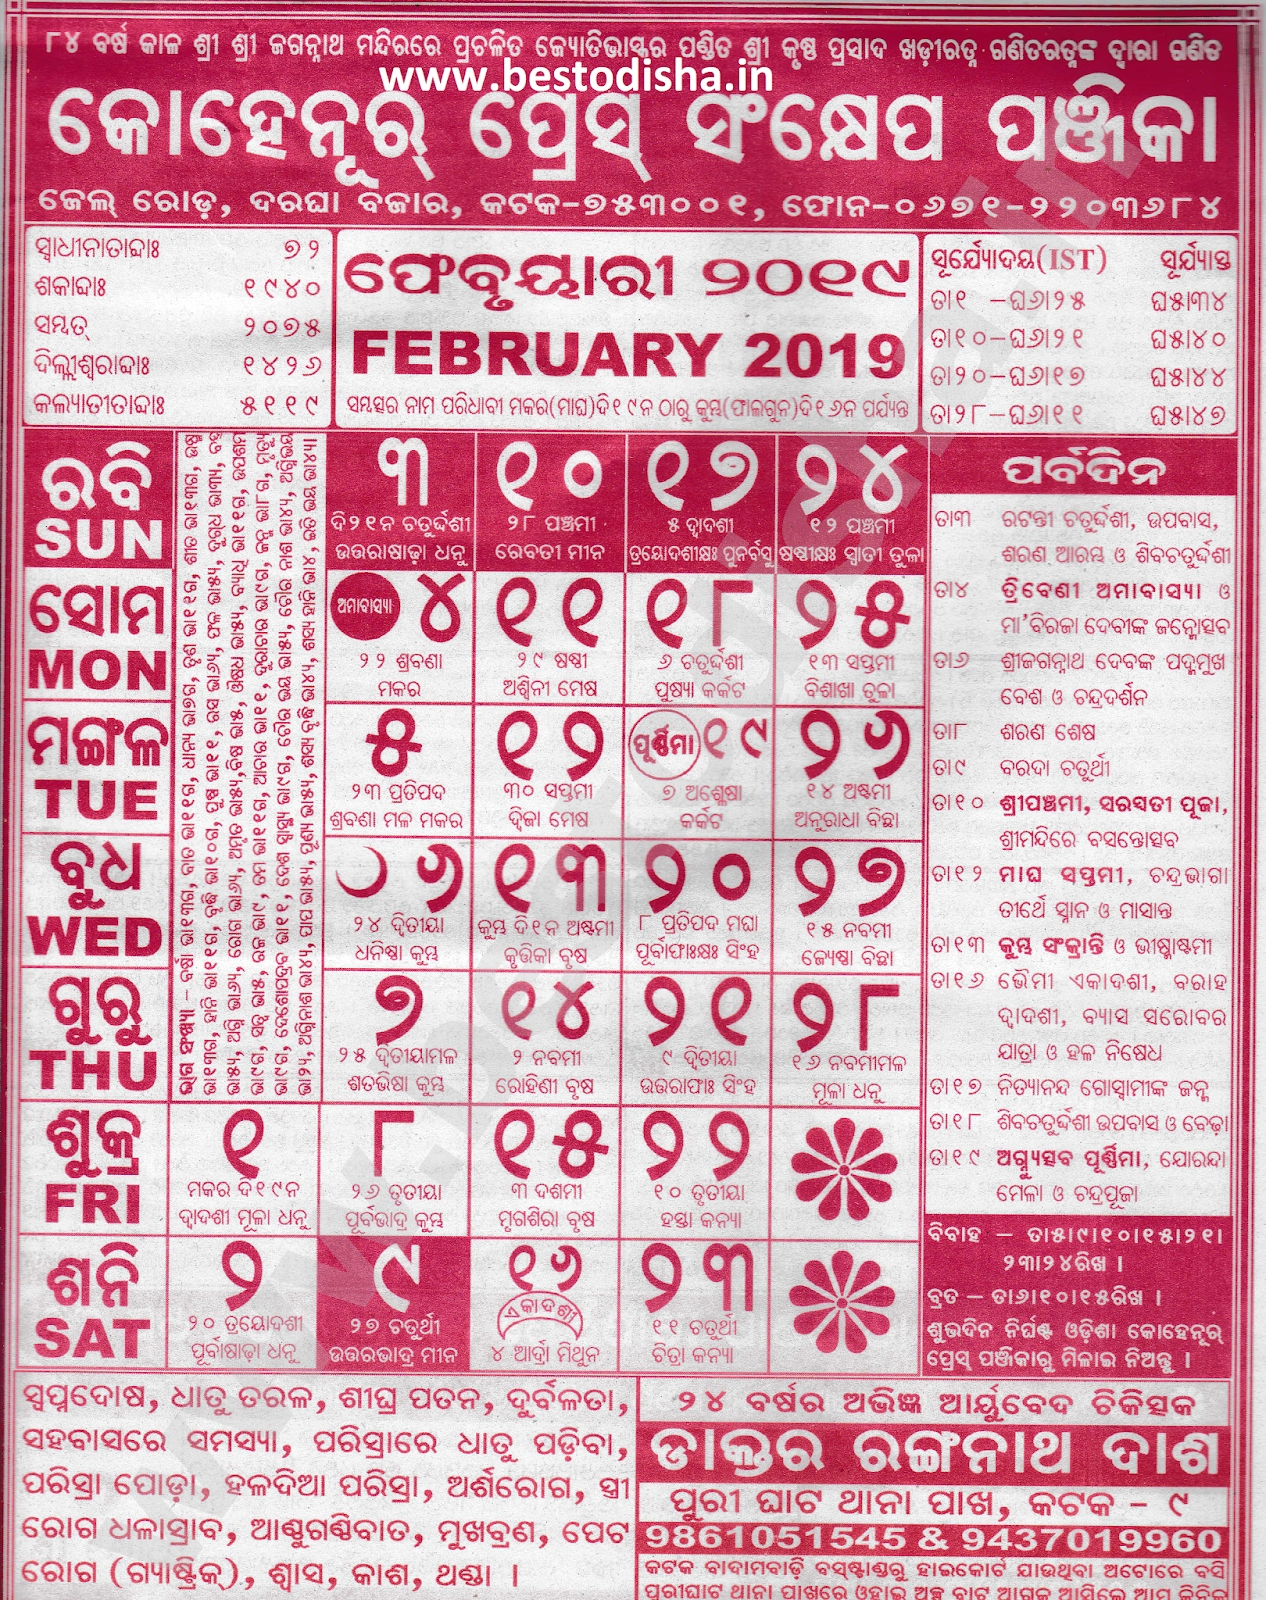 Best Odisha: Kohinoor Odia Calendar 2019 Pdf Download Here-Odia Calendar 2020 January